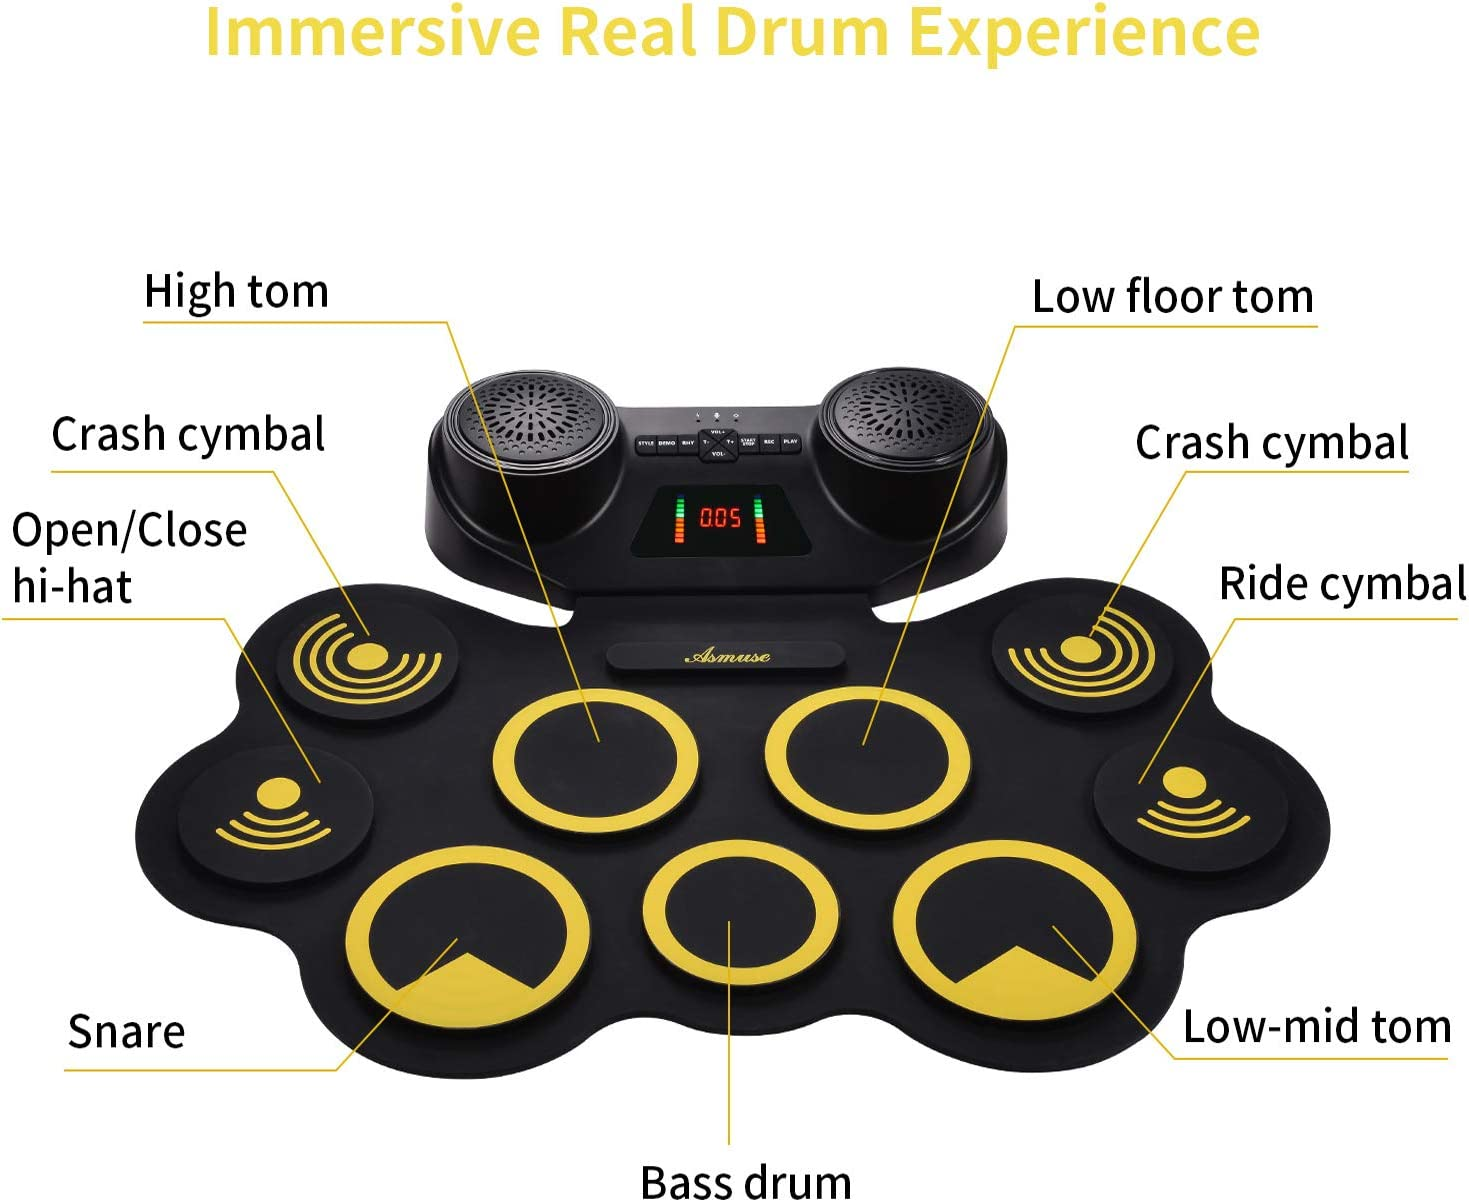 Asmuse Portable Electric Drum Set 9 Pads Built-in Dual Speaker Portable Practice Pads with Bluetooth Function Headphone Jack and Pedals